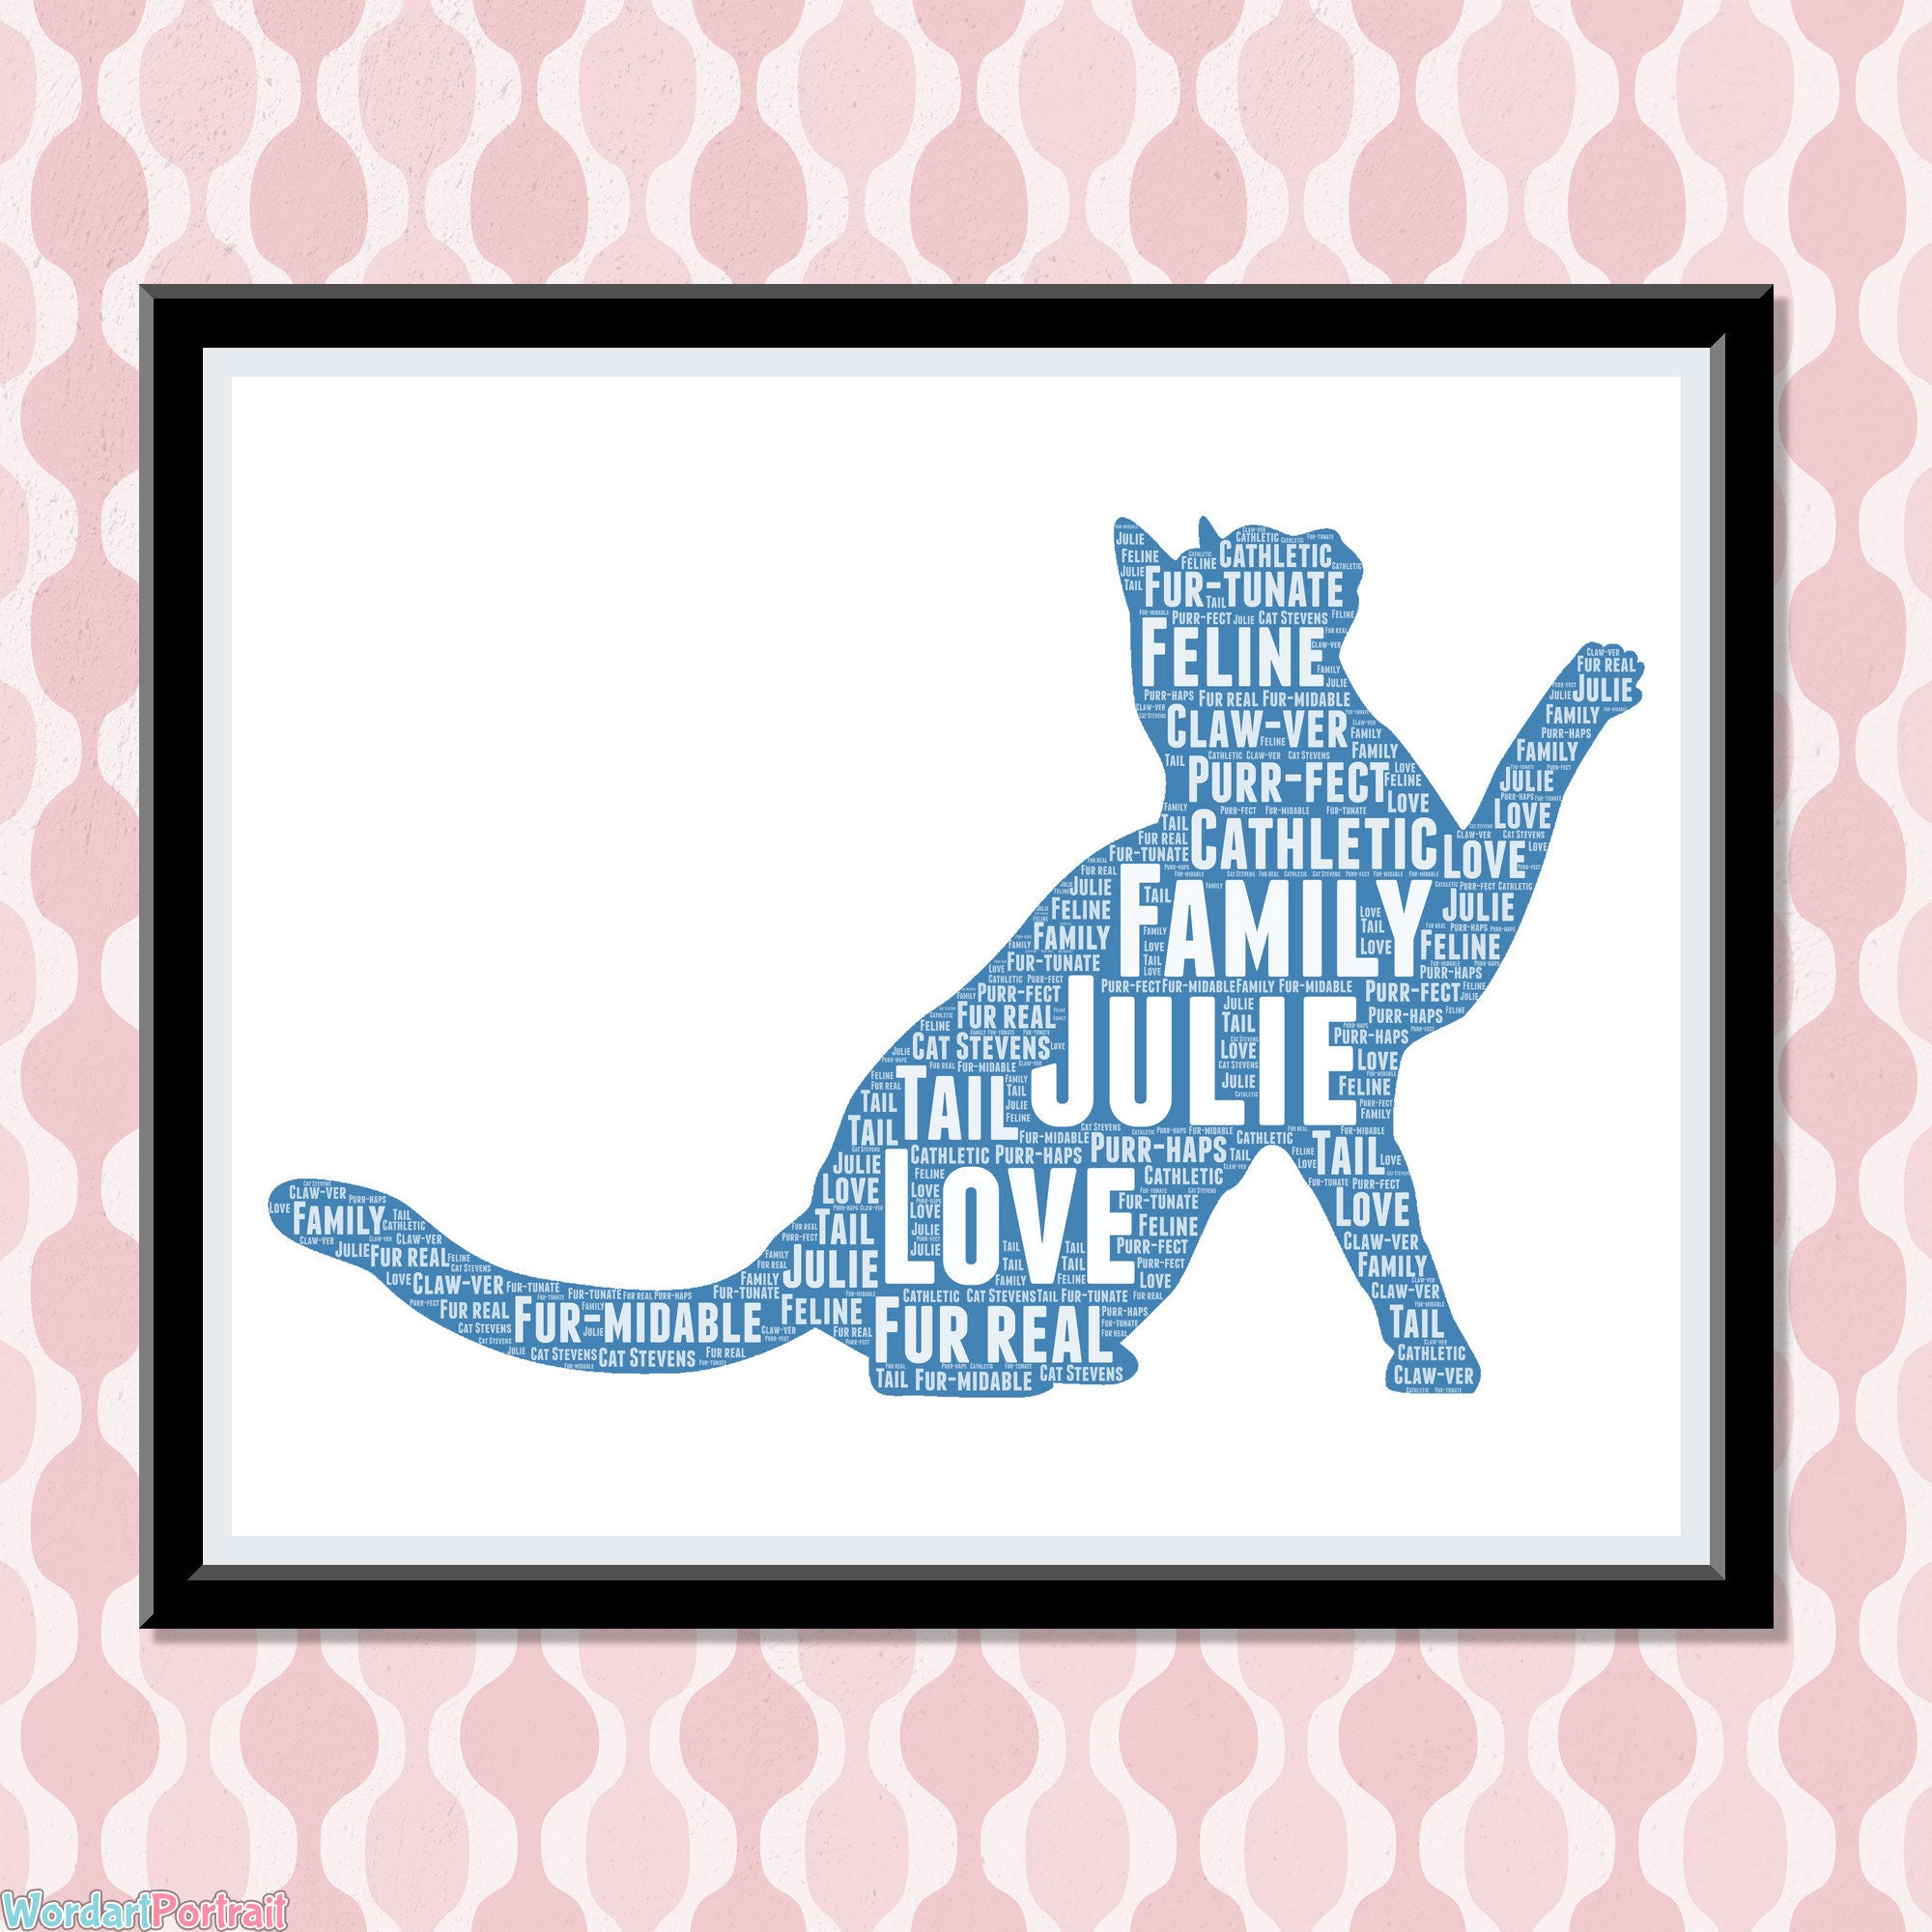 Personalized Cat Lovers Gifts- Word Cloud Art Wall Decor - Crazy Cat Meow Lady Gift - Pets Mum Mom Dad Owner Print Gifts